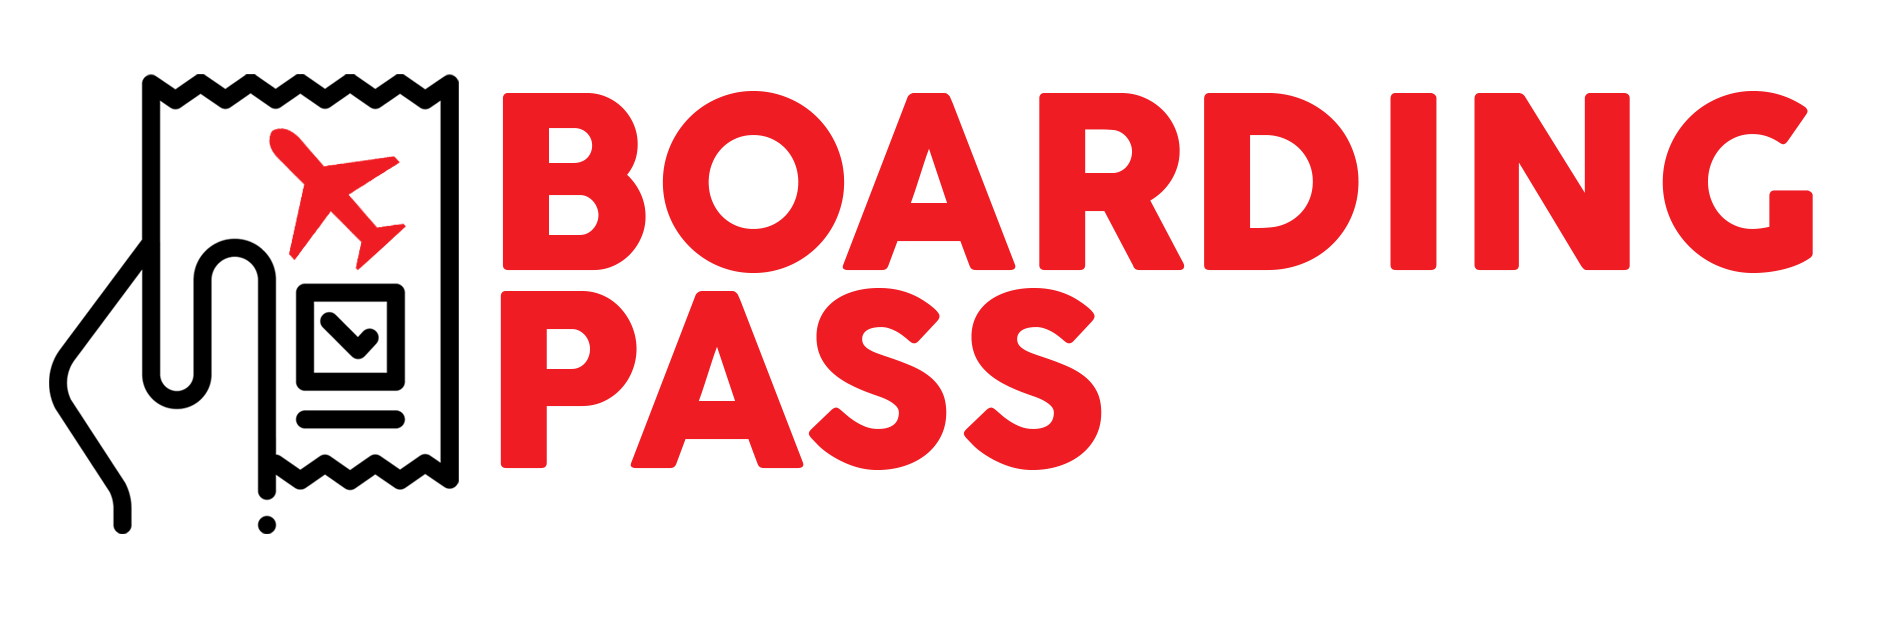 BoardingPass.ro